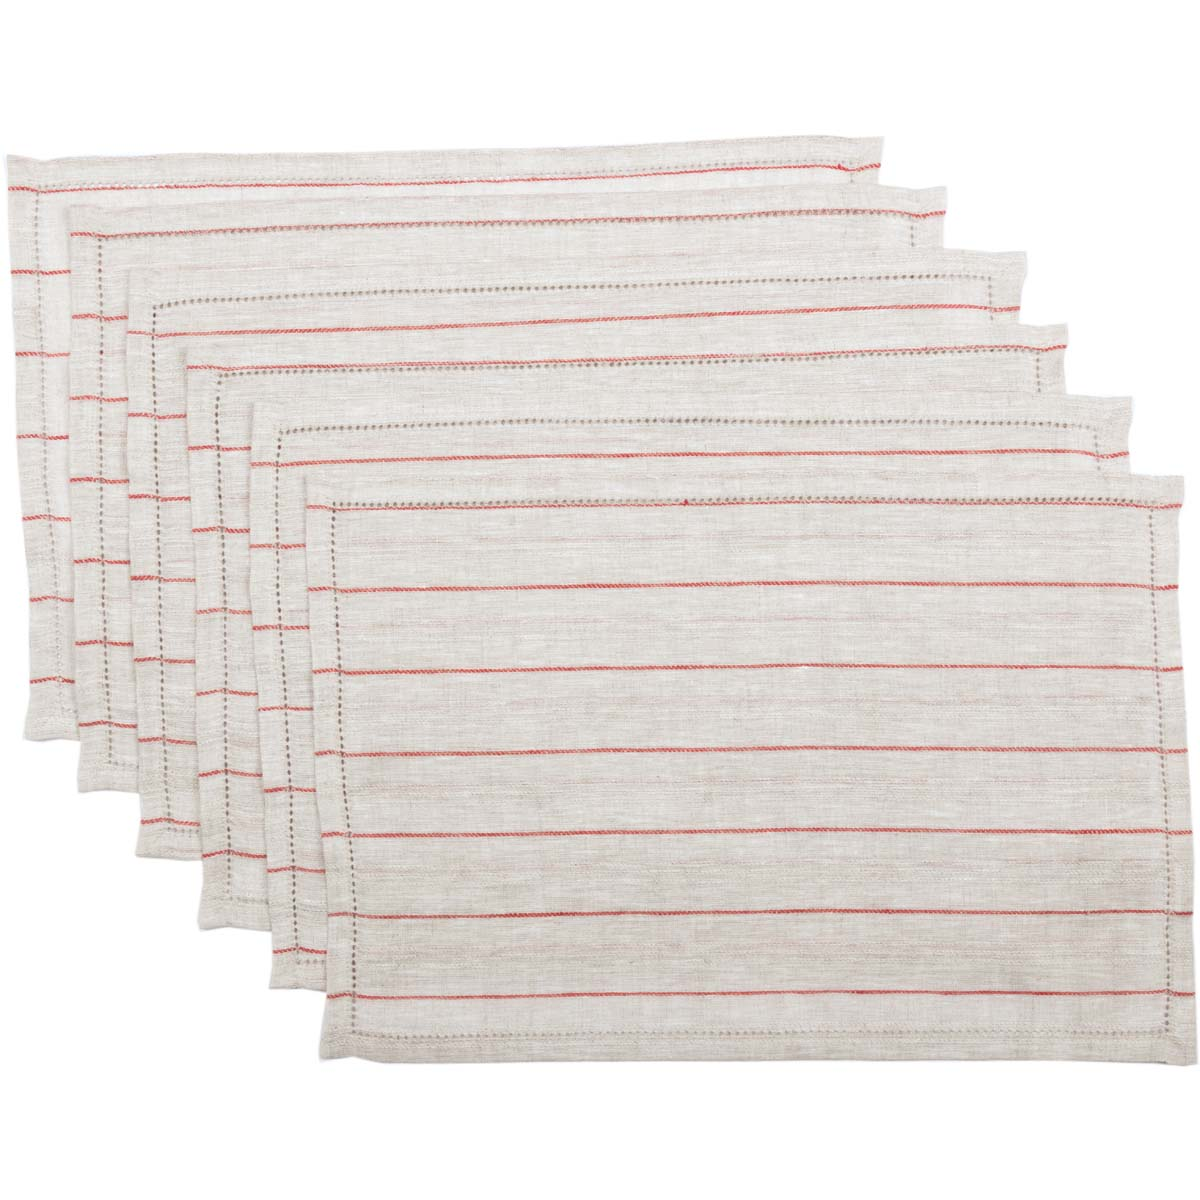 Charley Red Placemat Set of 6 12x18